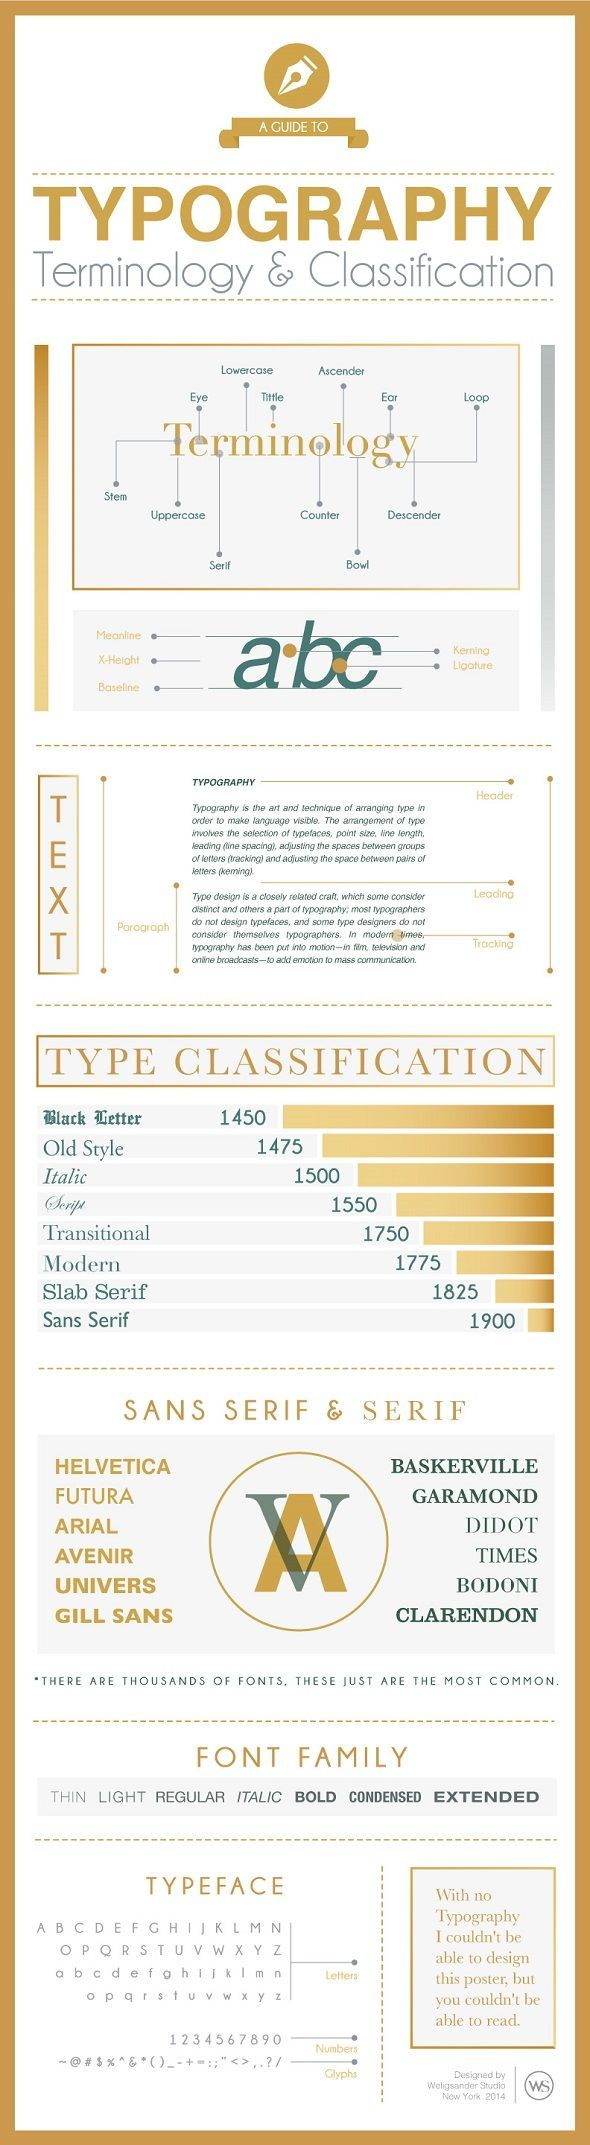 Typography - terminology and classification